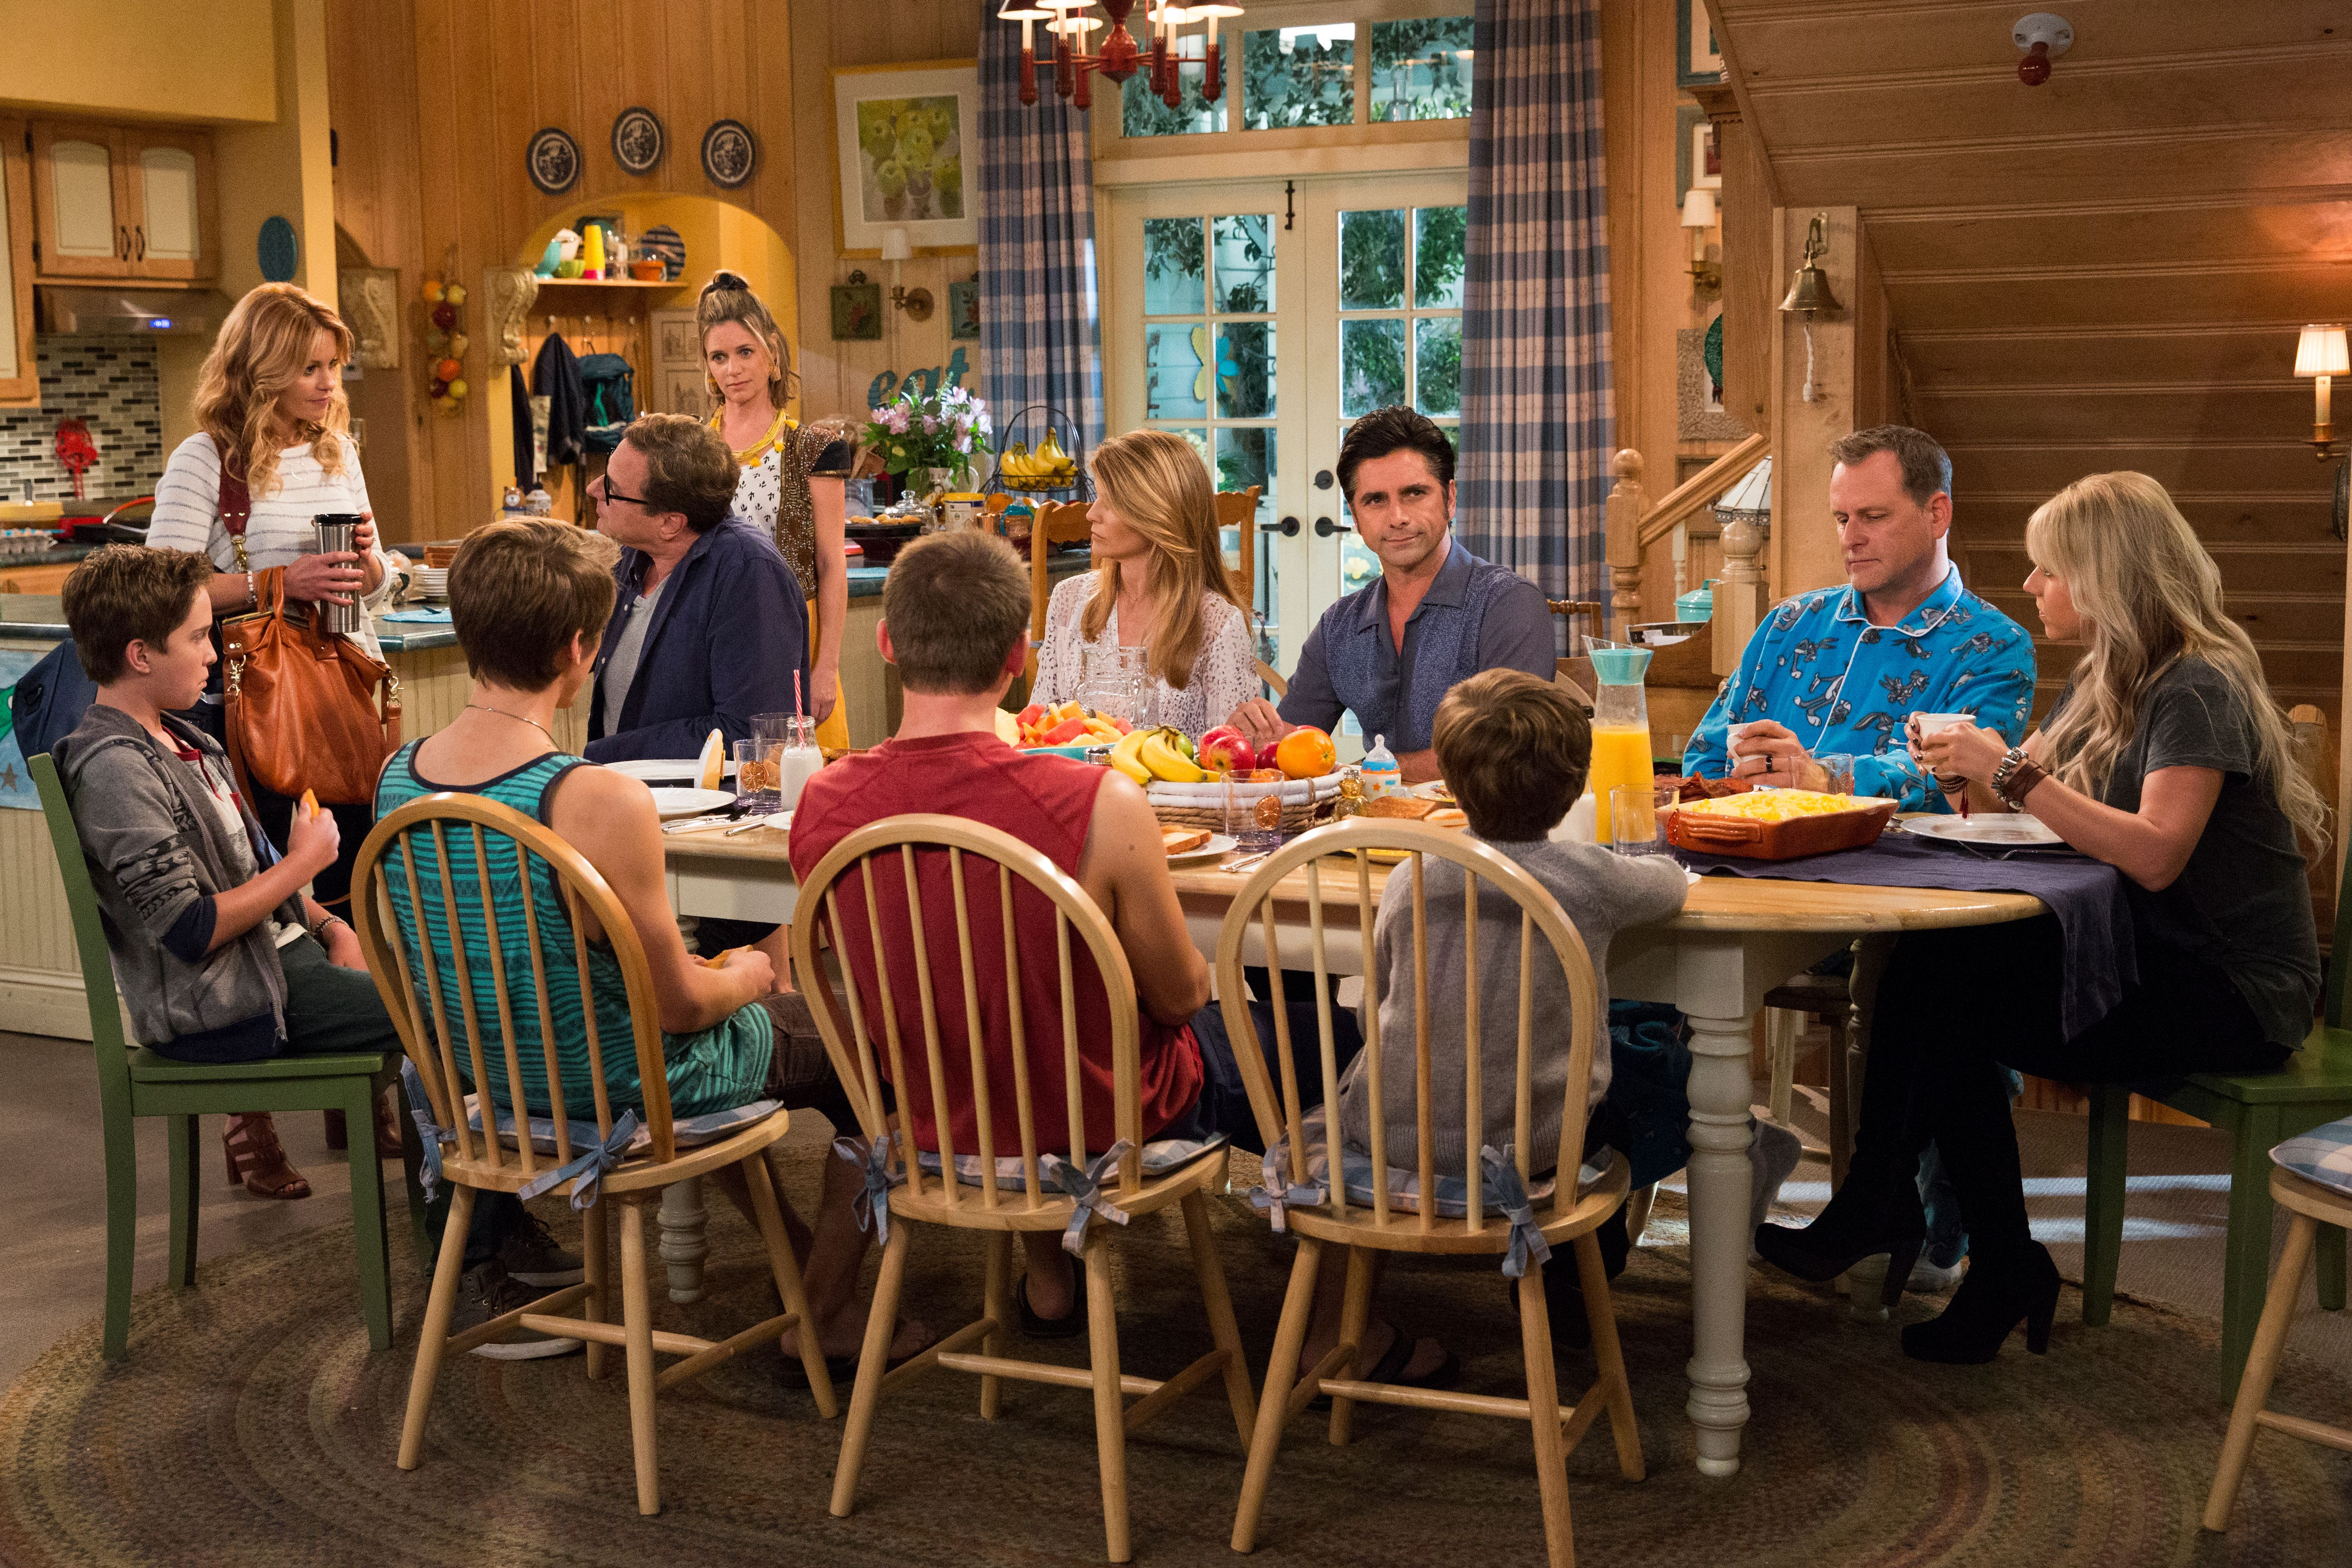 fuller house: 21 things to know about the netflix series | collider